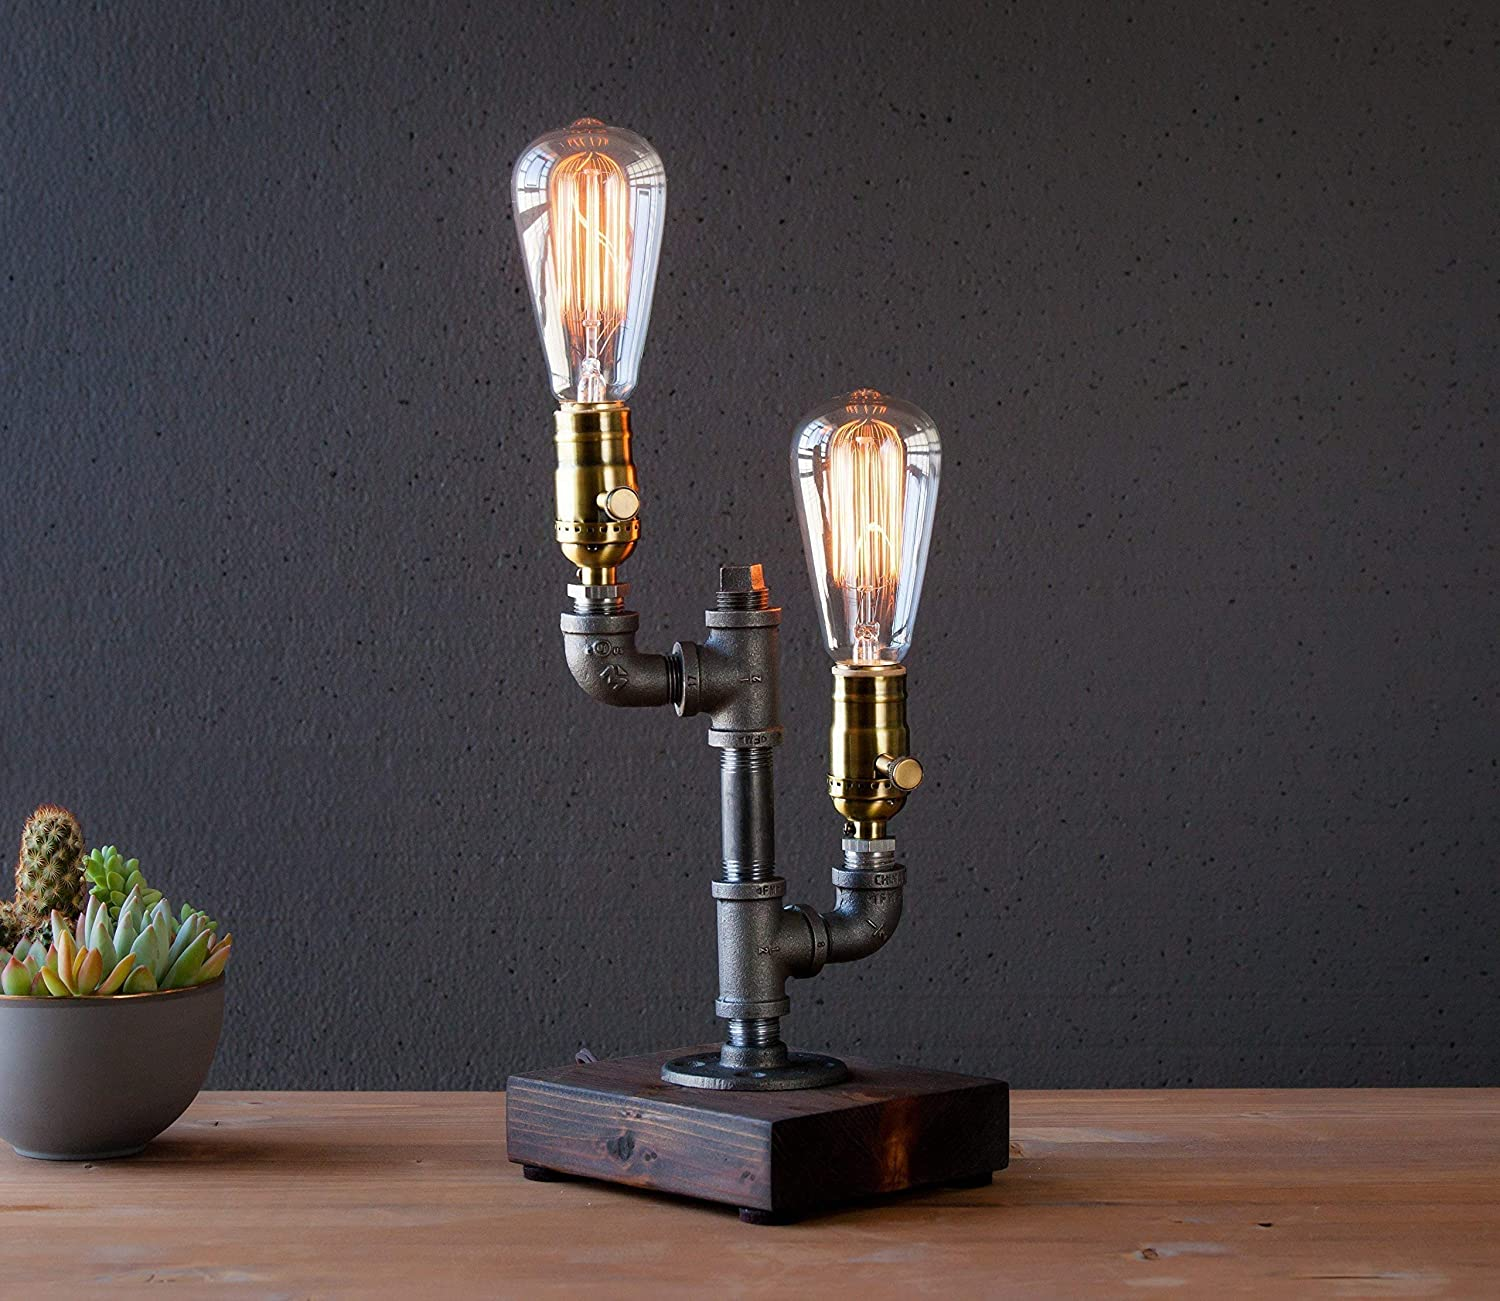 Handcrafted Industrial Pipe  2 light lamp in with edison bulbs,assembled in USA